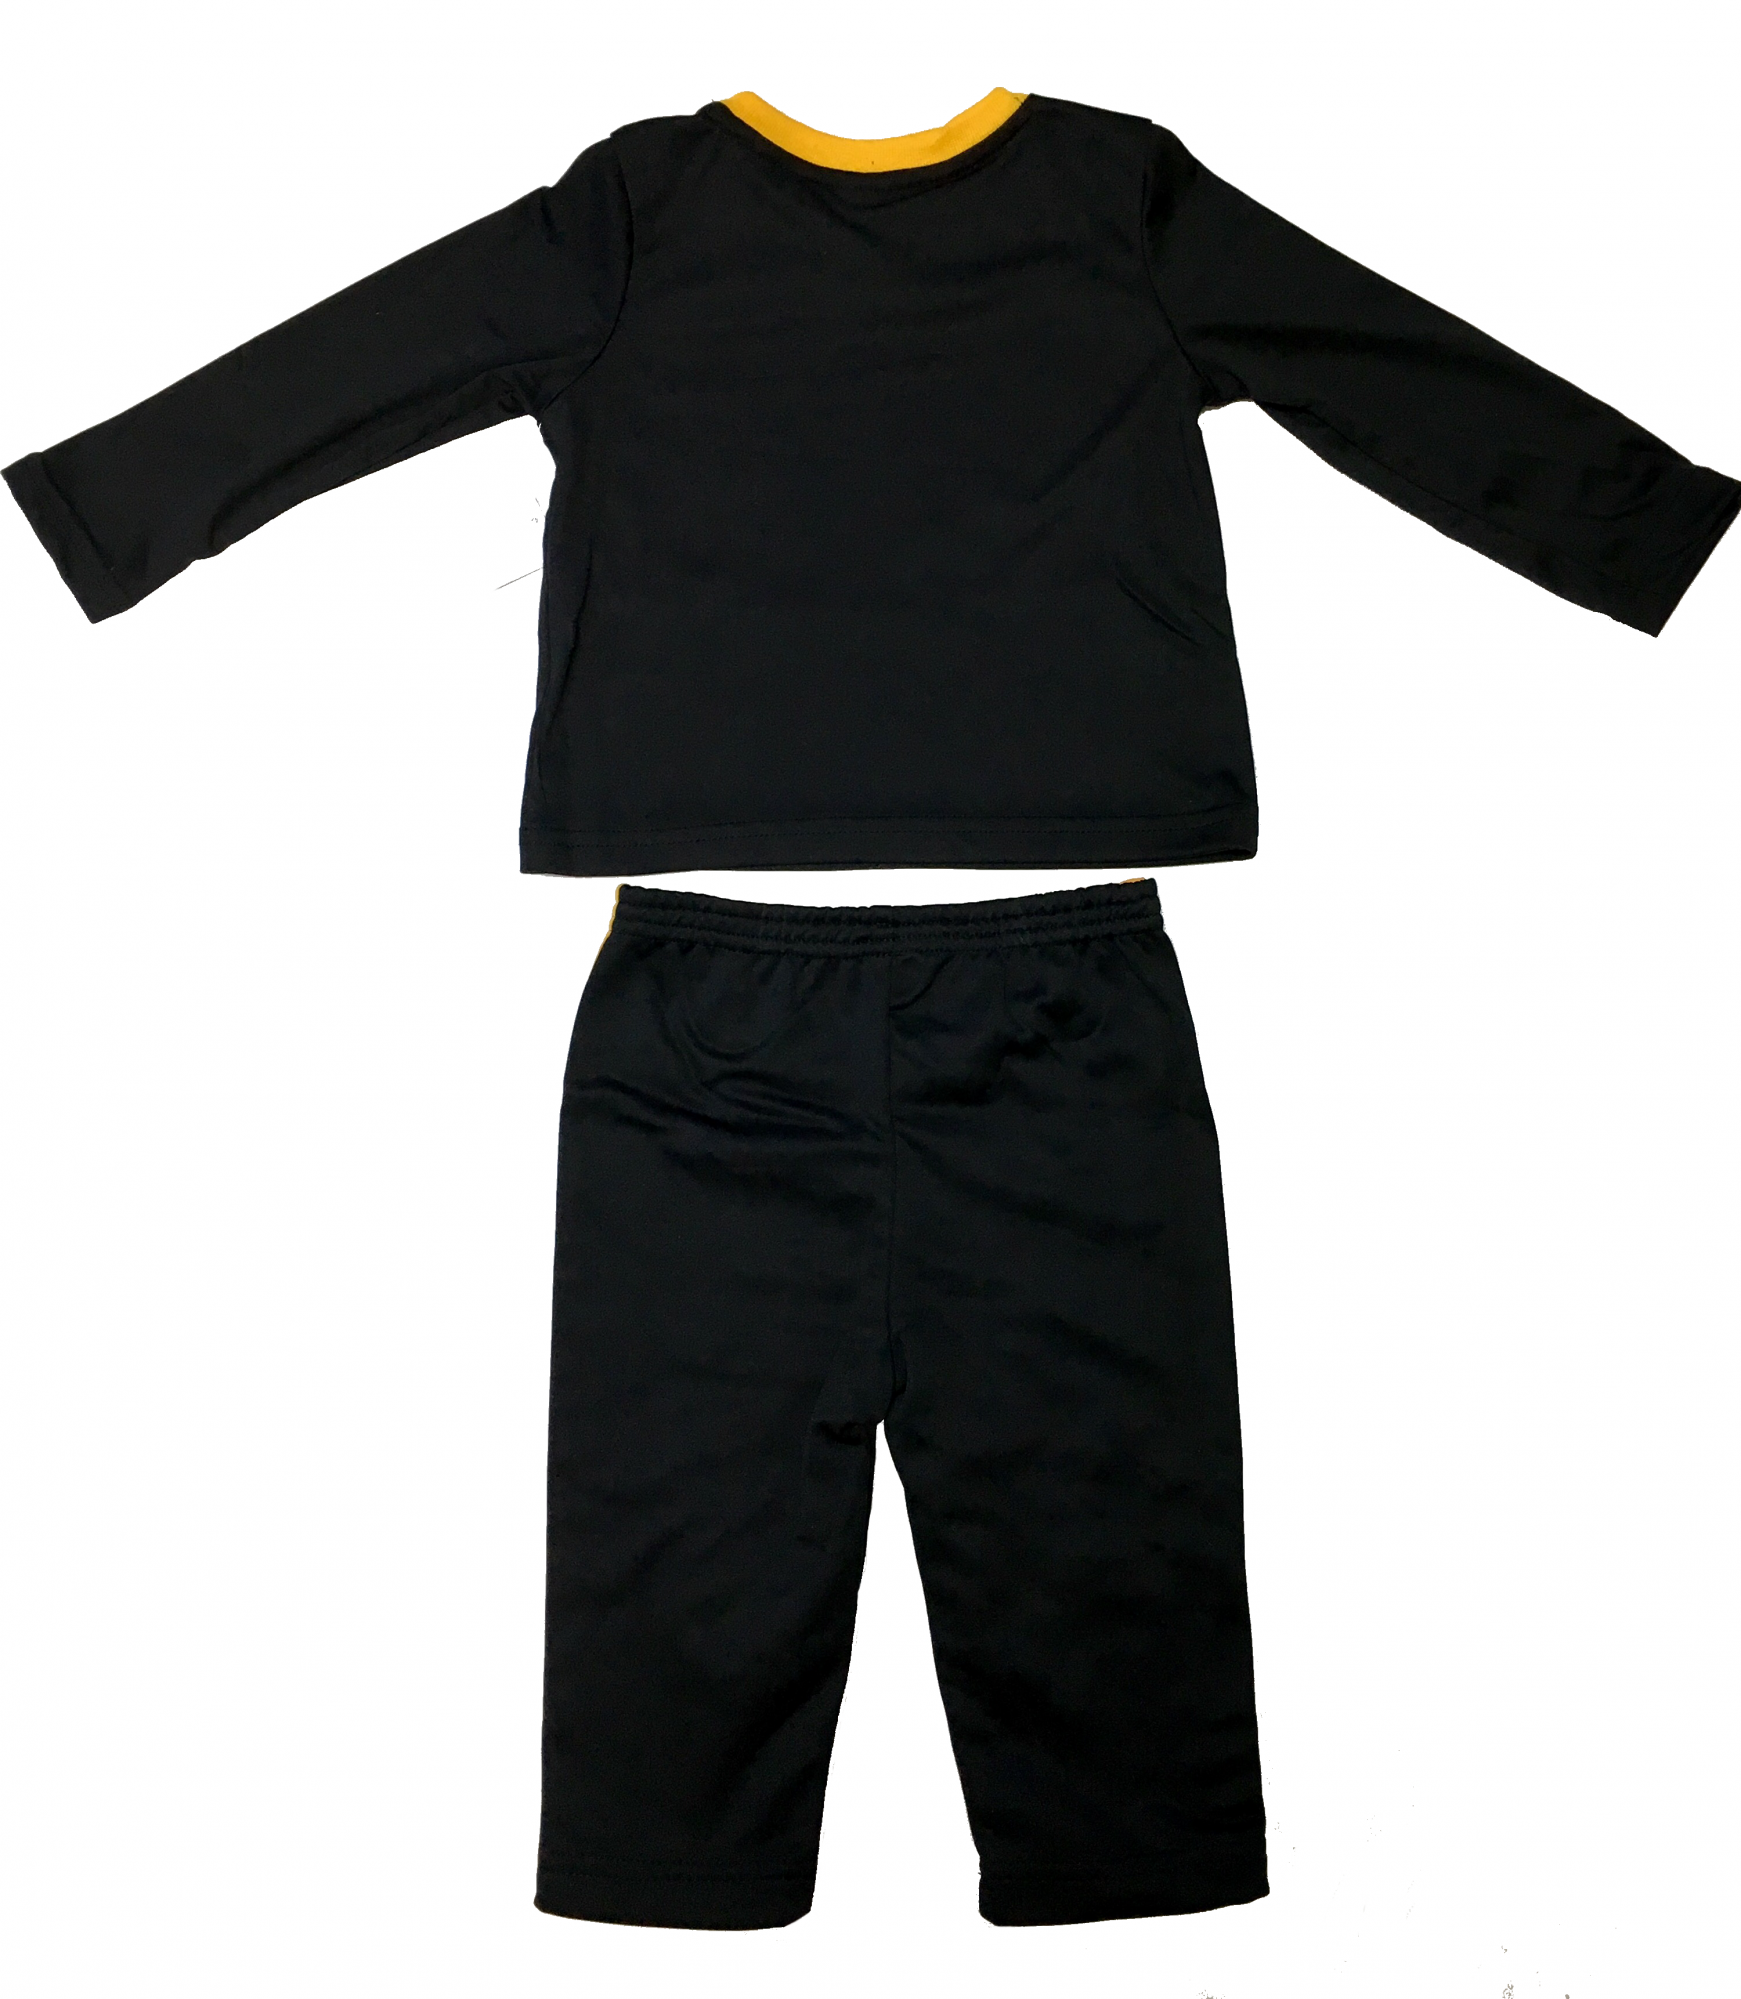 NFL-Steelers-childrens-performance-tee-and-track-pants-back.PNG